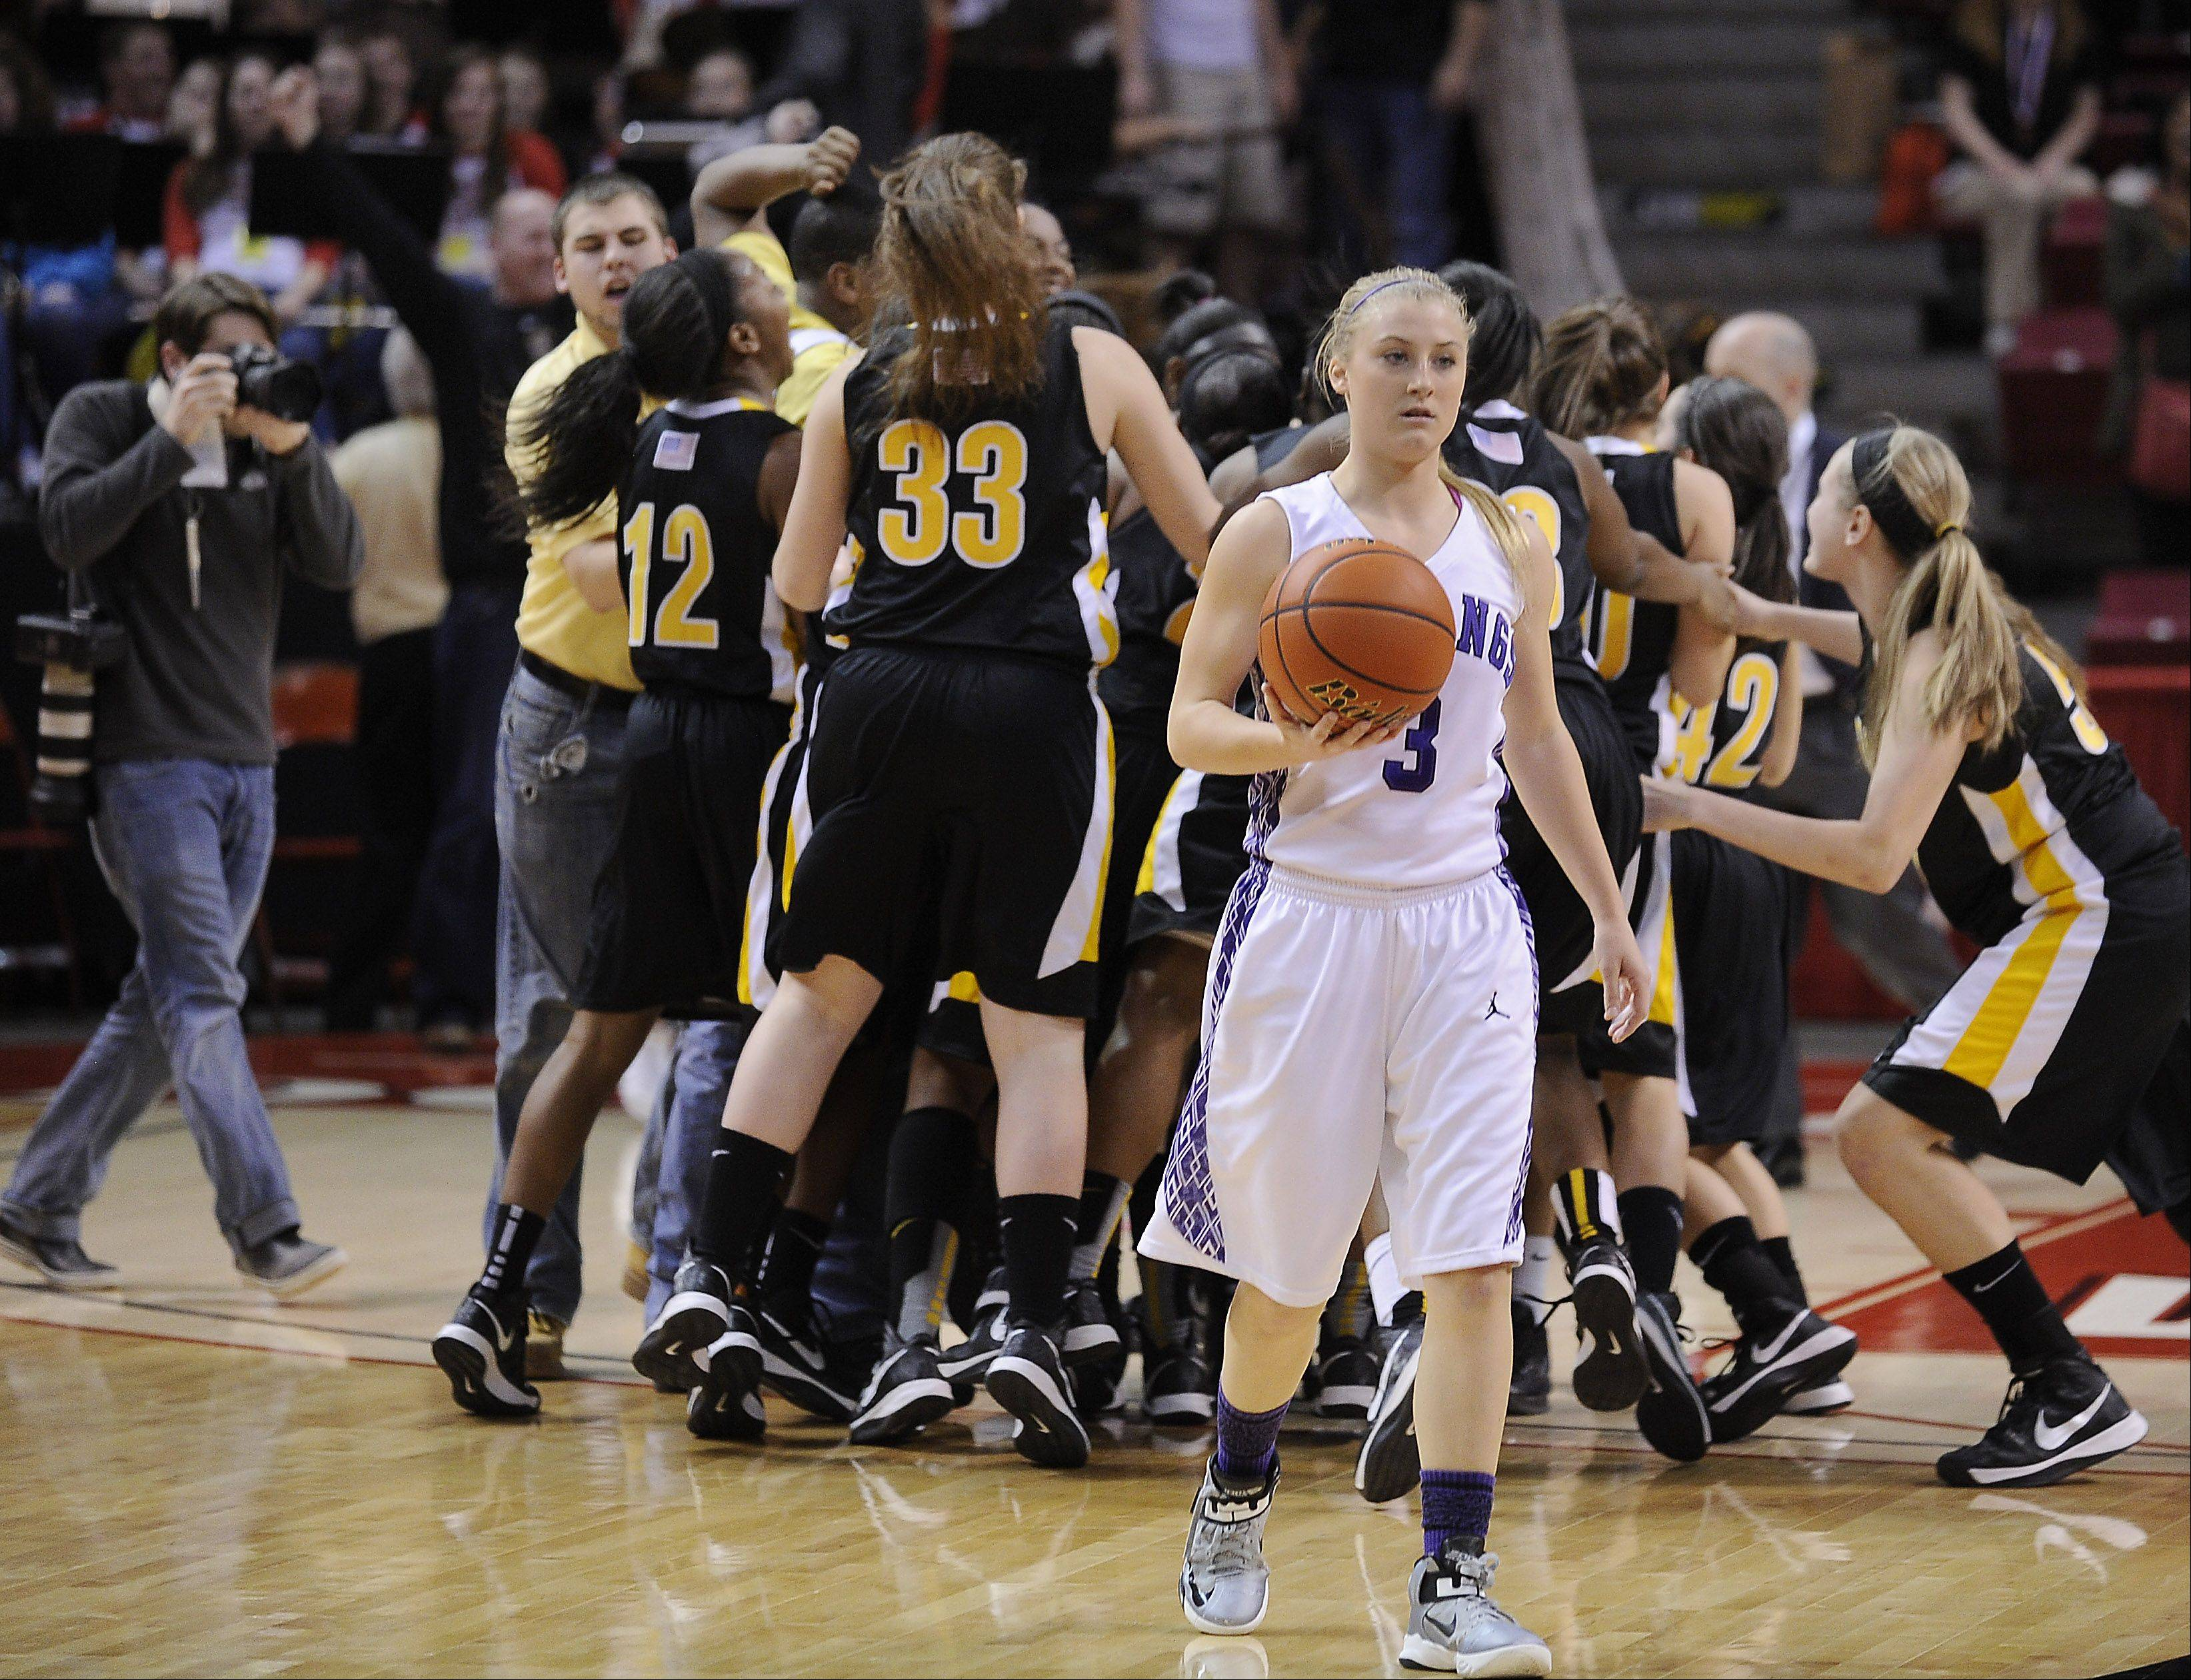 Destiny spites Rolling Meadows girls team